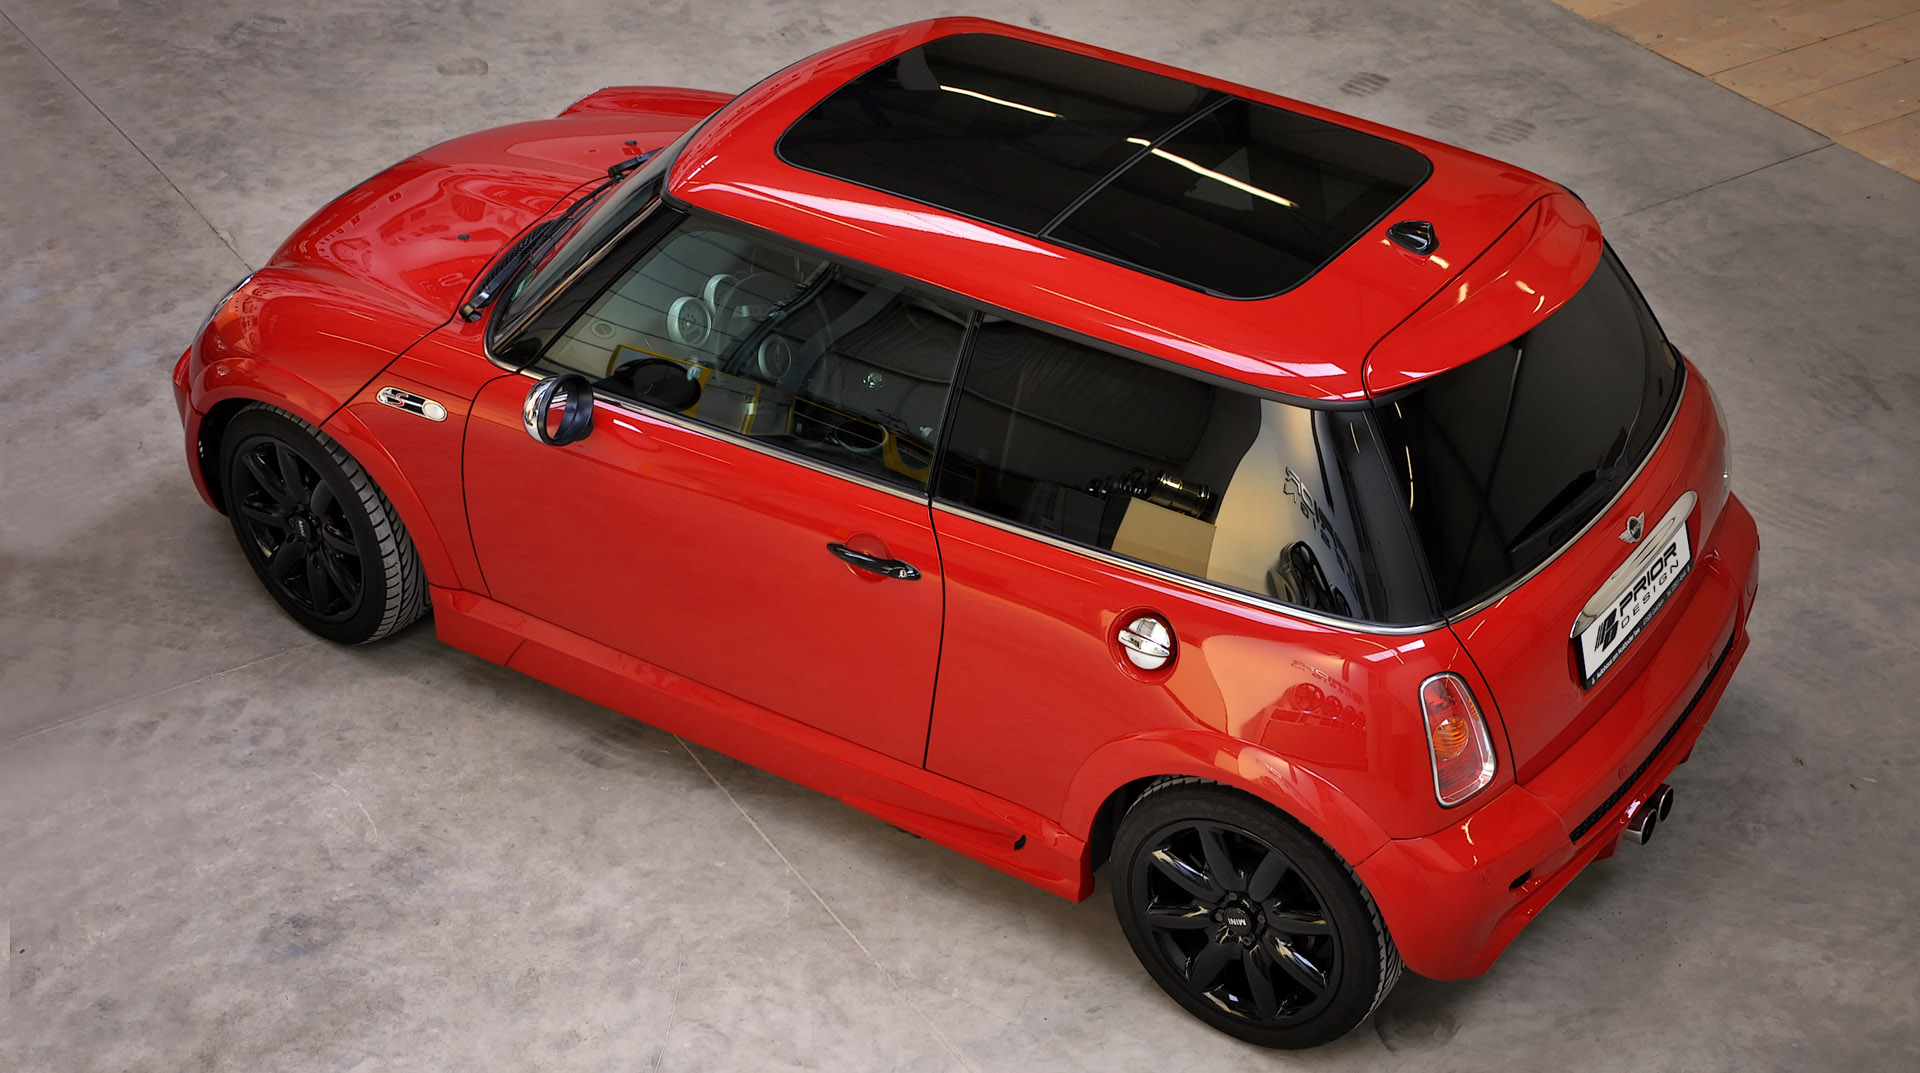 Wow Mini Cooper Nop Its a Kelisa with custom design Mini cooper